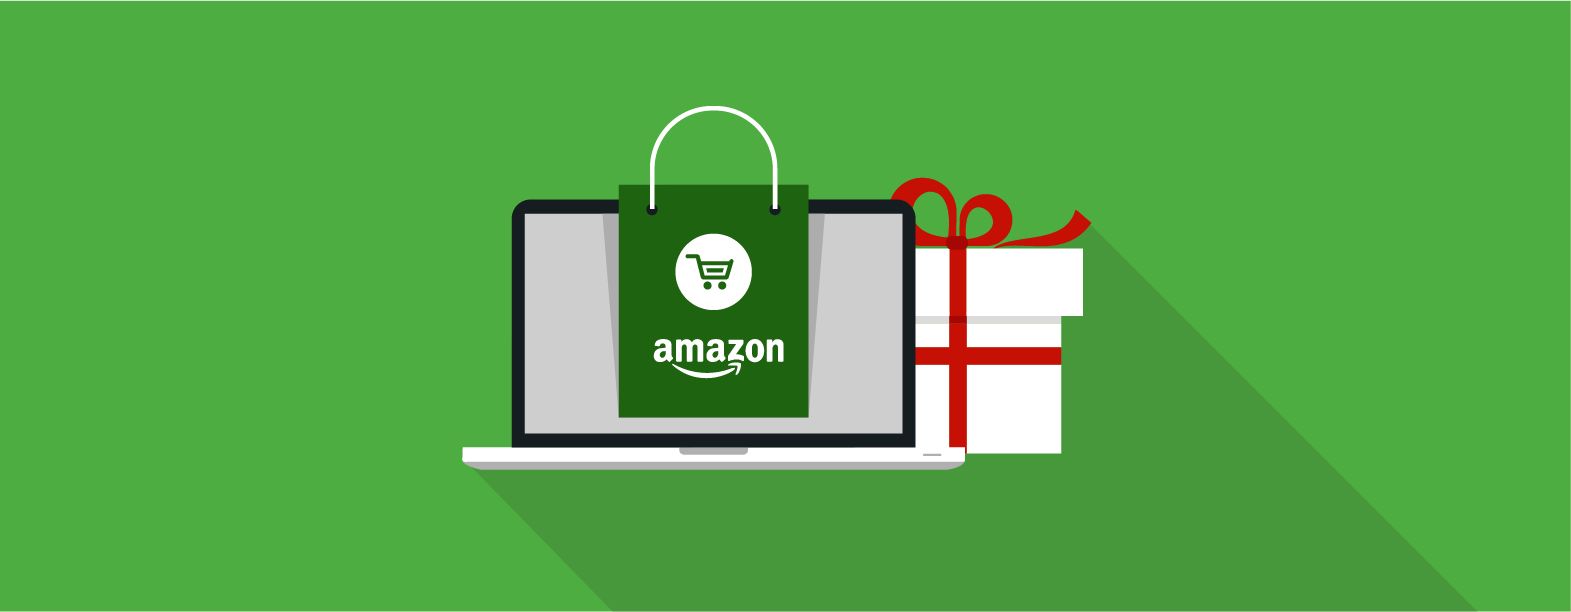 Grow your online sales on Amazon & benefit from FBA this holiday season